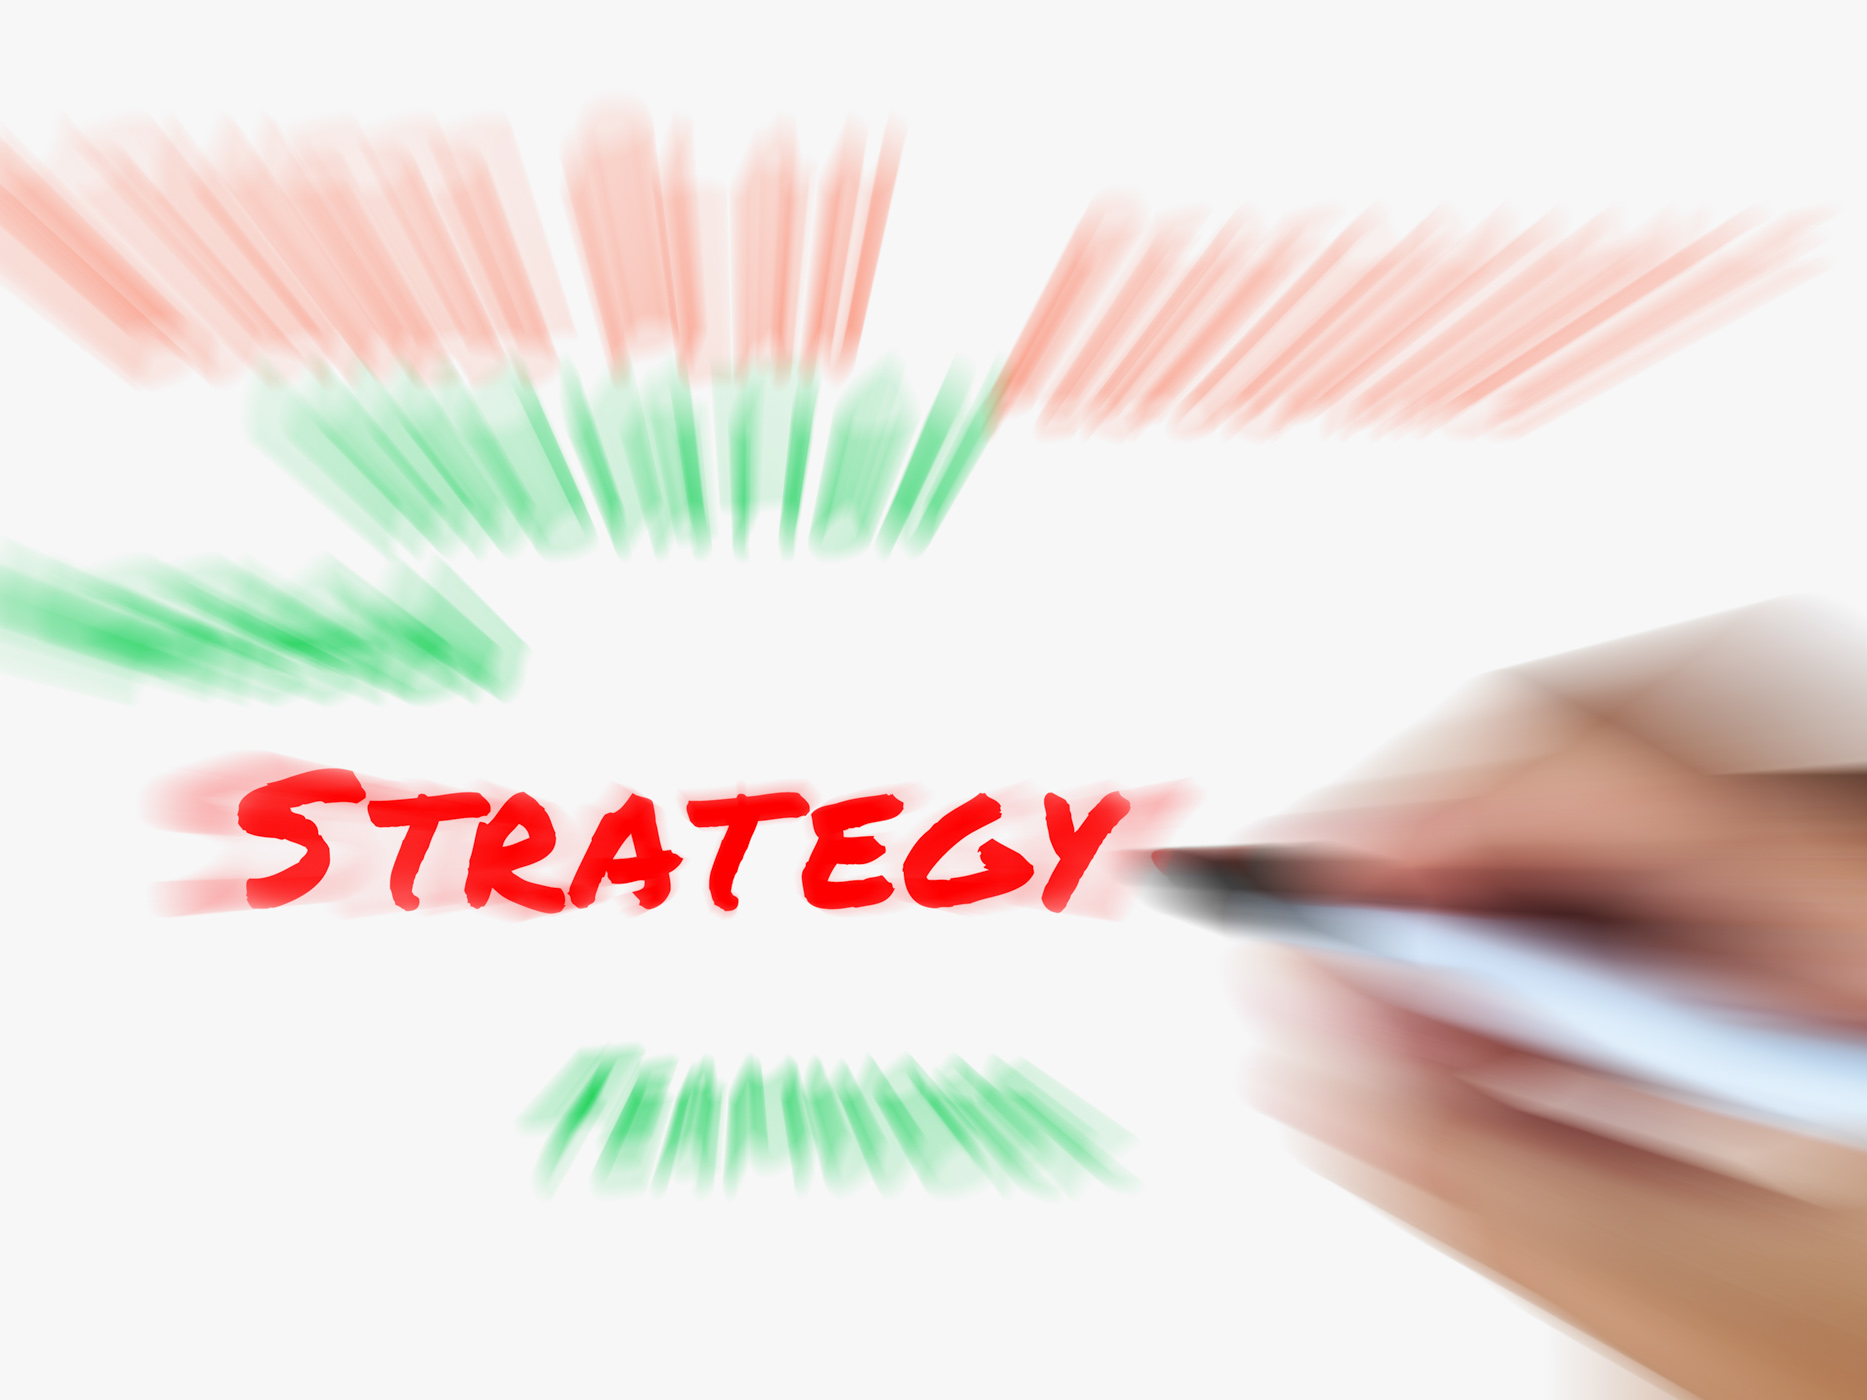 Strategy on whiteboard displays planning goals objectives and strategi photo